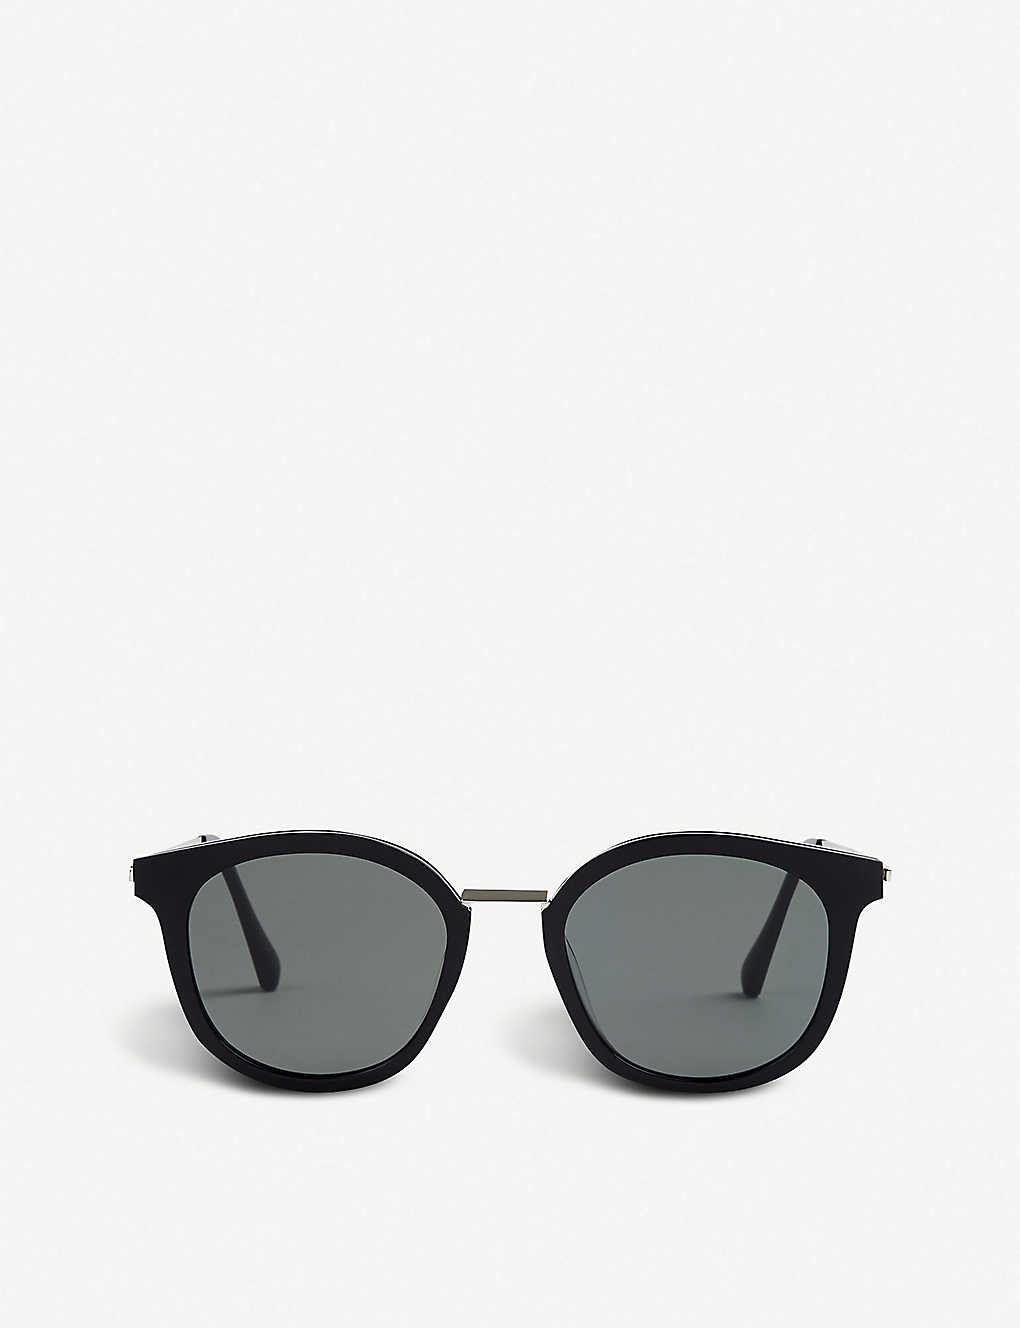 84ea6337b70a7 GENTLE MONSTER - Dim acetate and stainless steel sunglasses ...